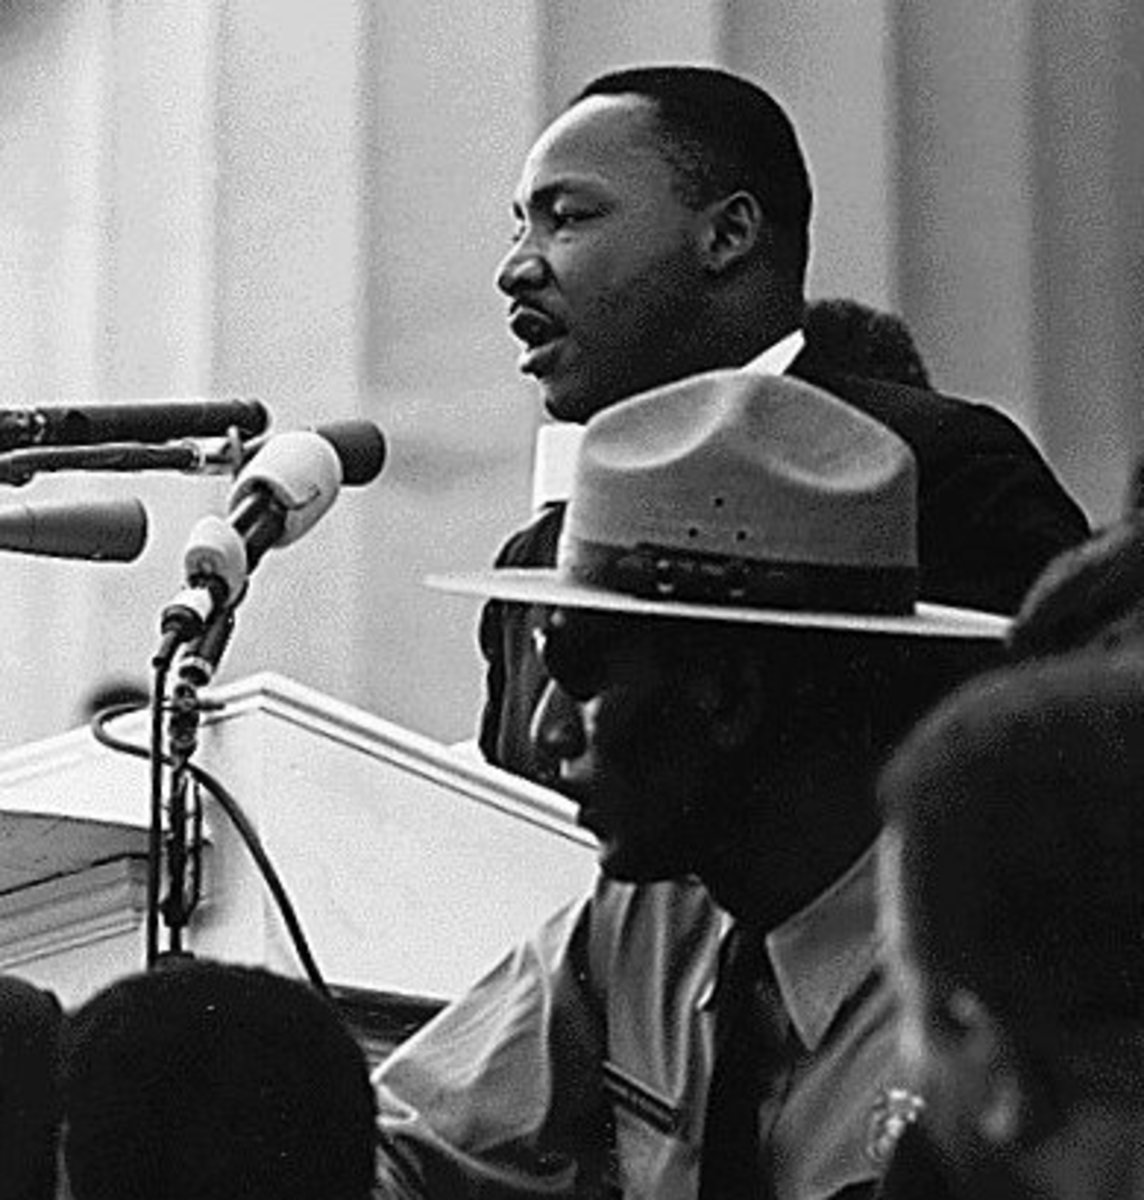 """MLK making his famous """"I have a dream"""" speech.  The speech took place in 1963 was delivered to a quarter of a million people in Washington DC.  It is considered by many to be one of the finest and most inspirational pieces of public oration ever."""